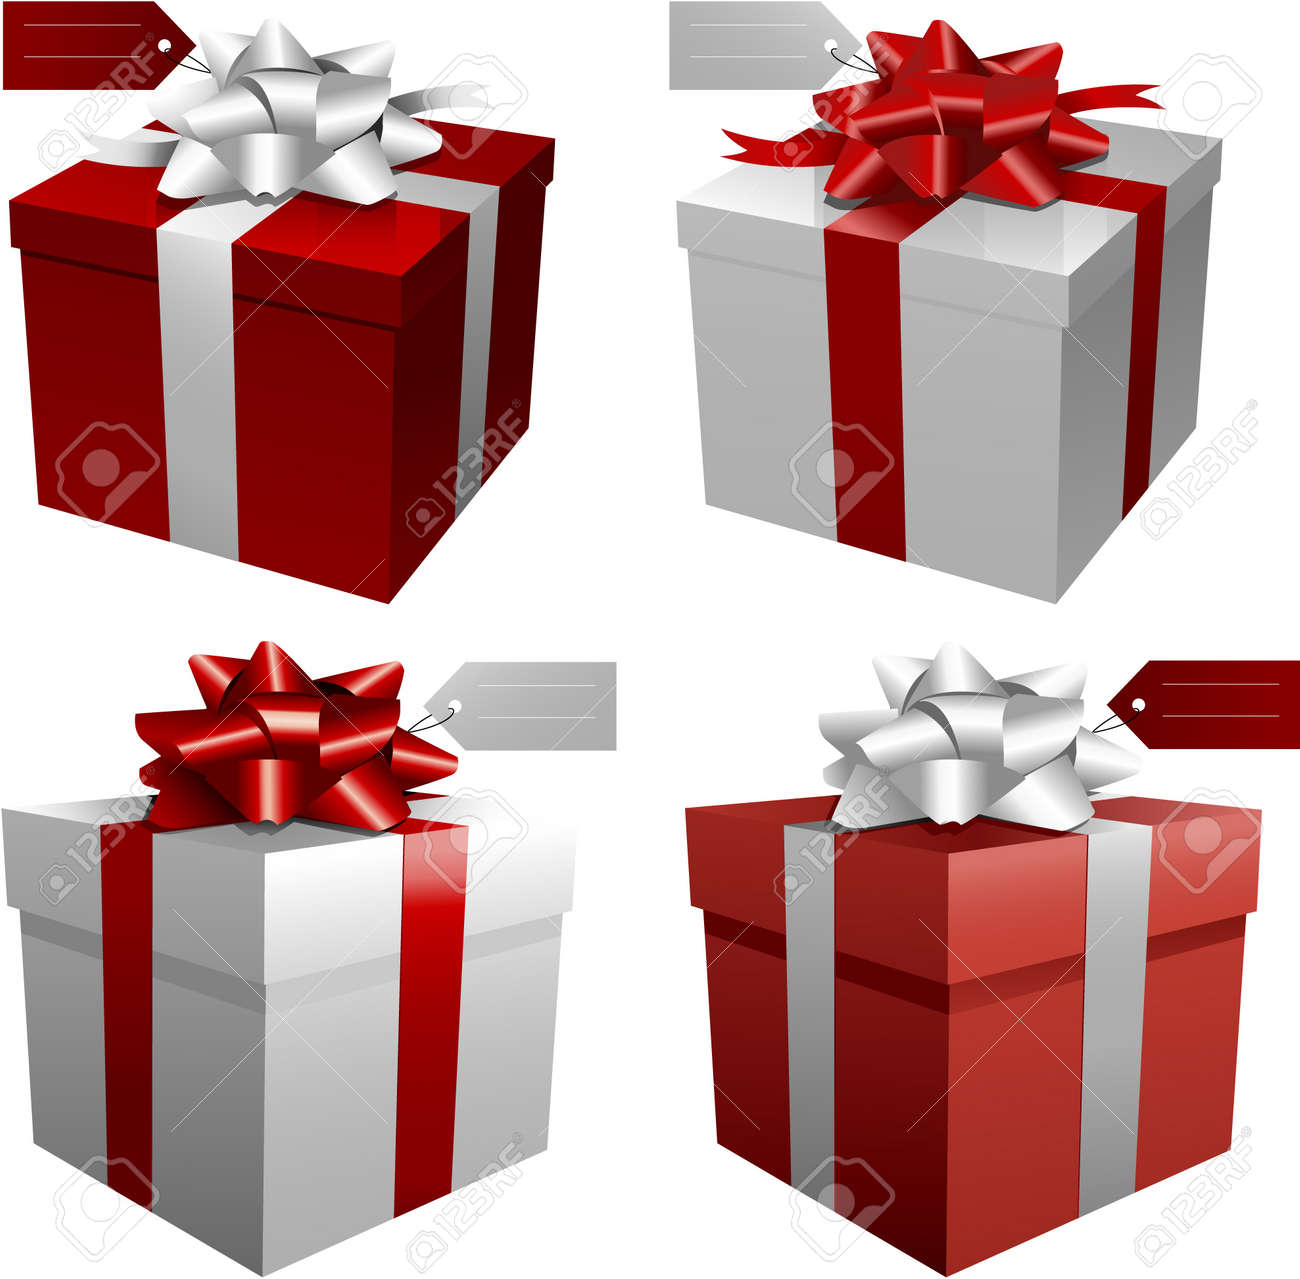 Red Christmas Gift Boxes Royalty Free Cliparts, Vectors, And Stock ...